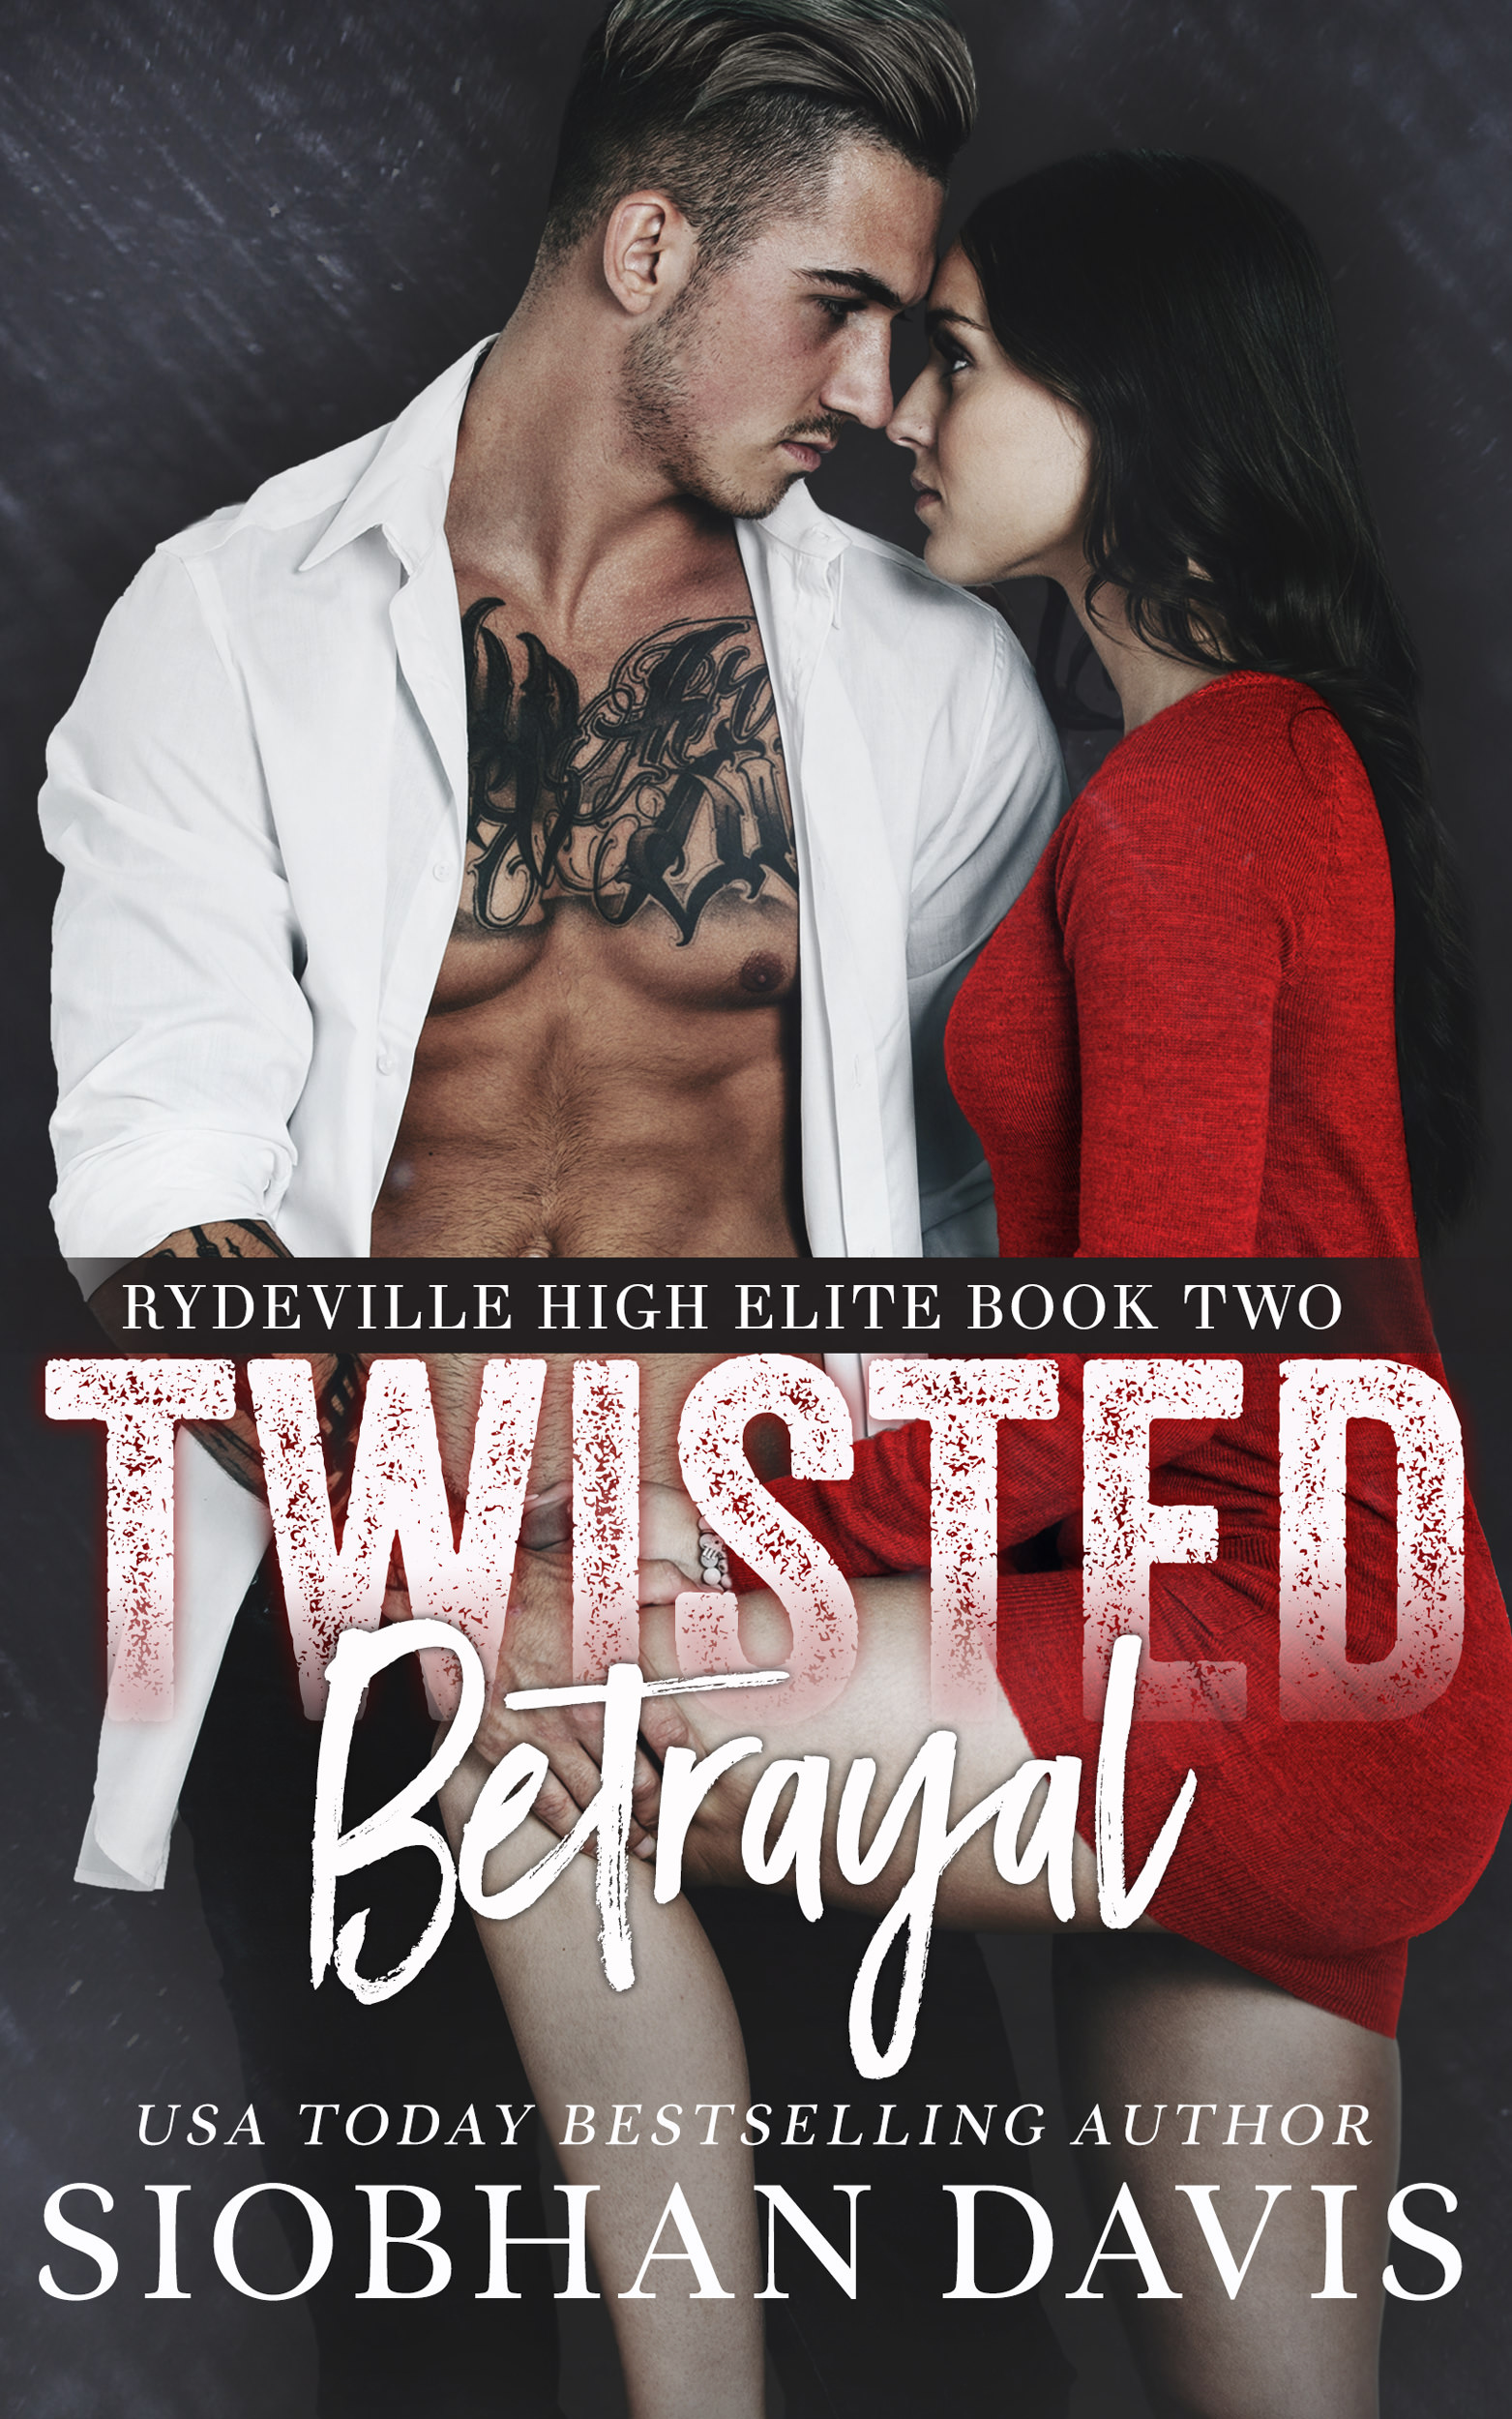 Twisted Betrayal (Rydeville High Elite #2)